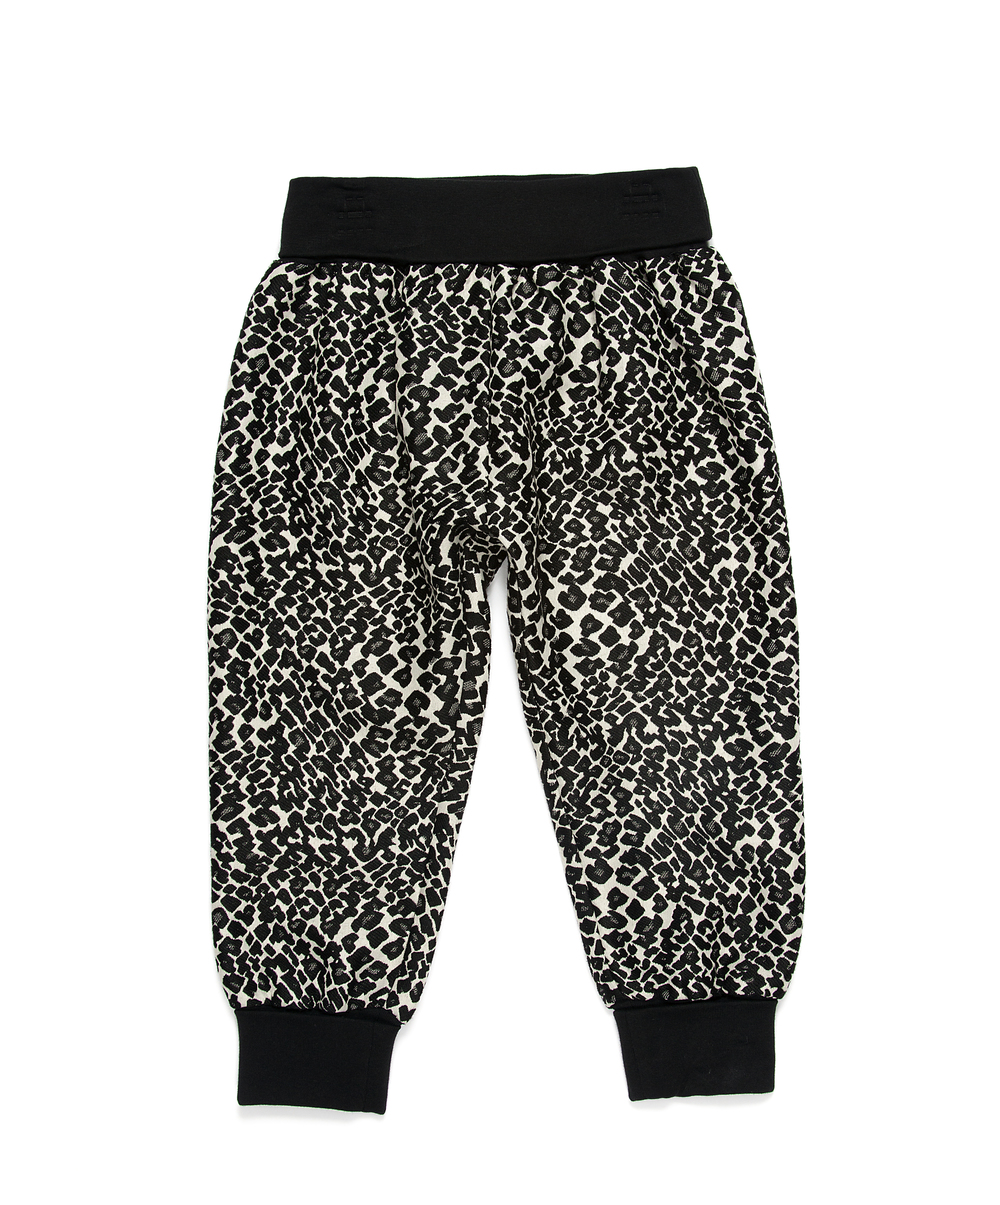 Girls Animal Print Pants Toddler.jpg